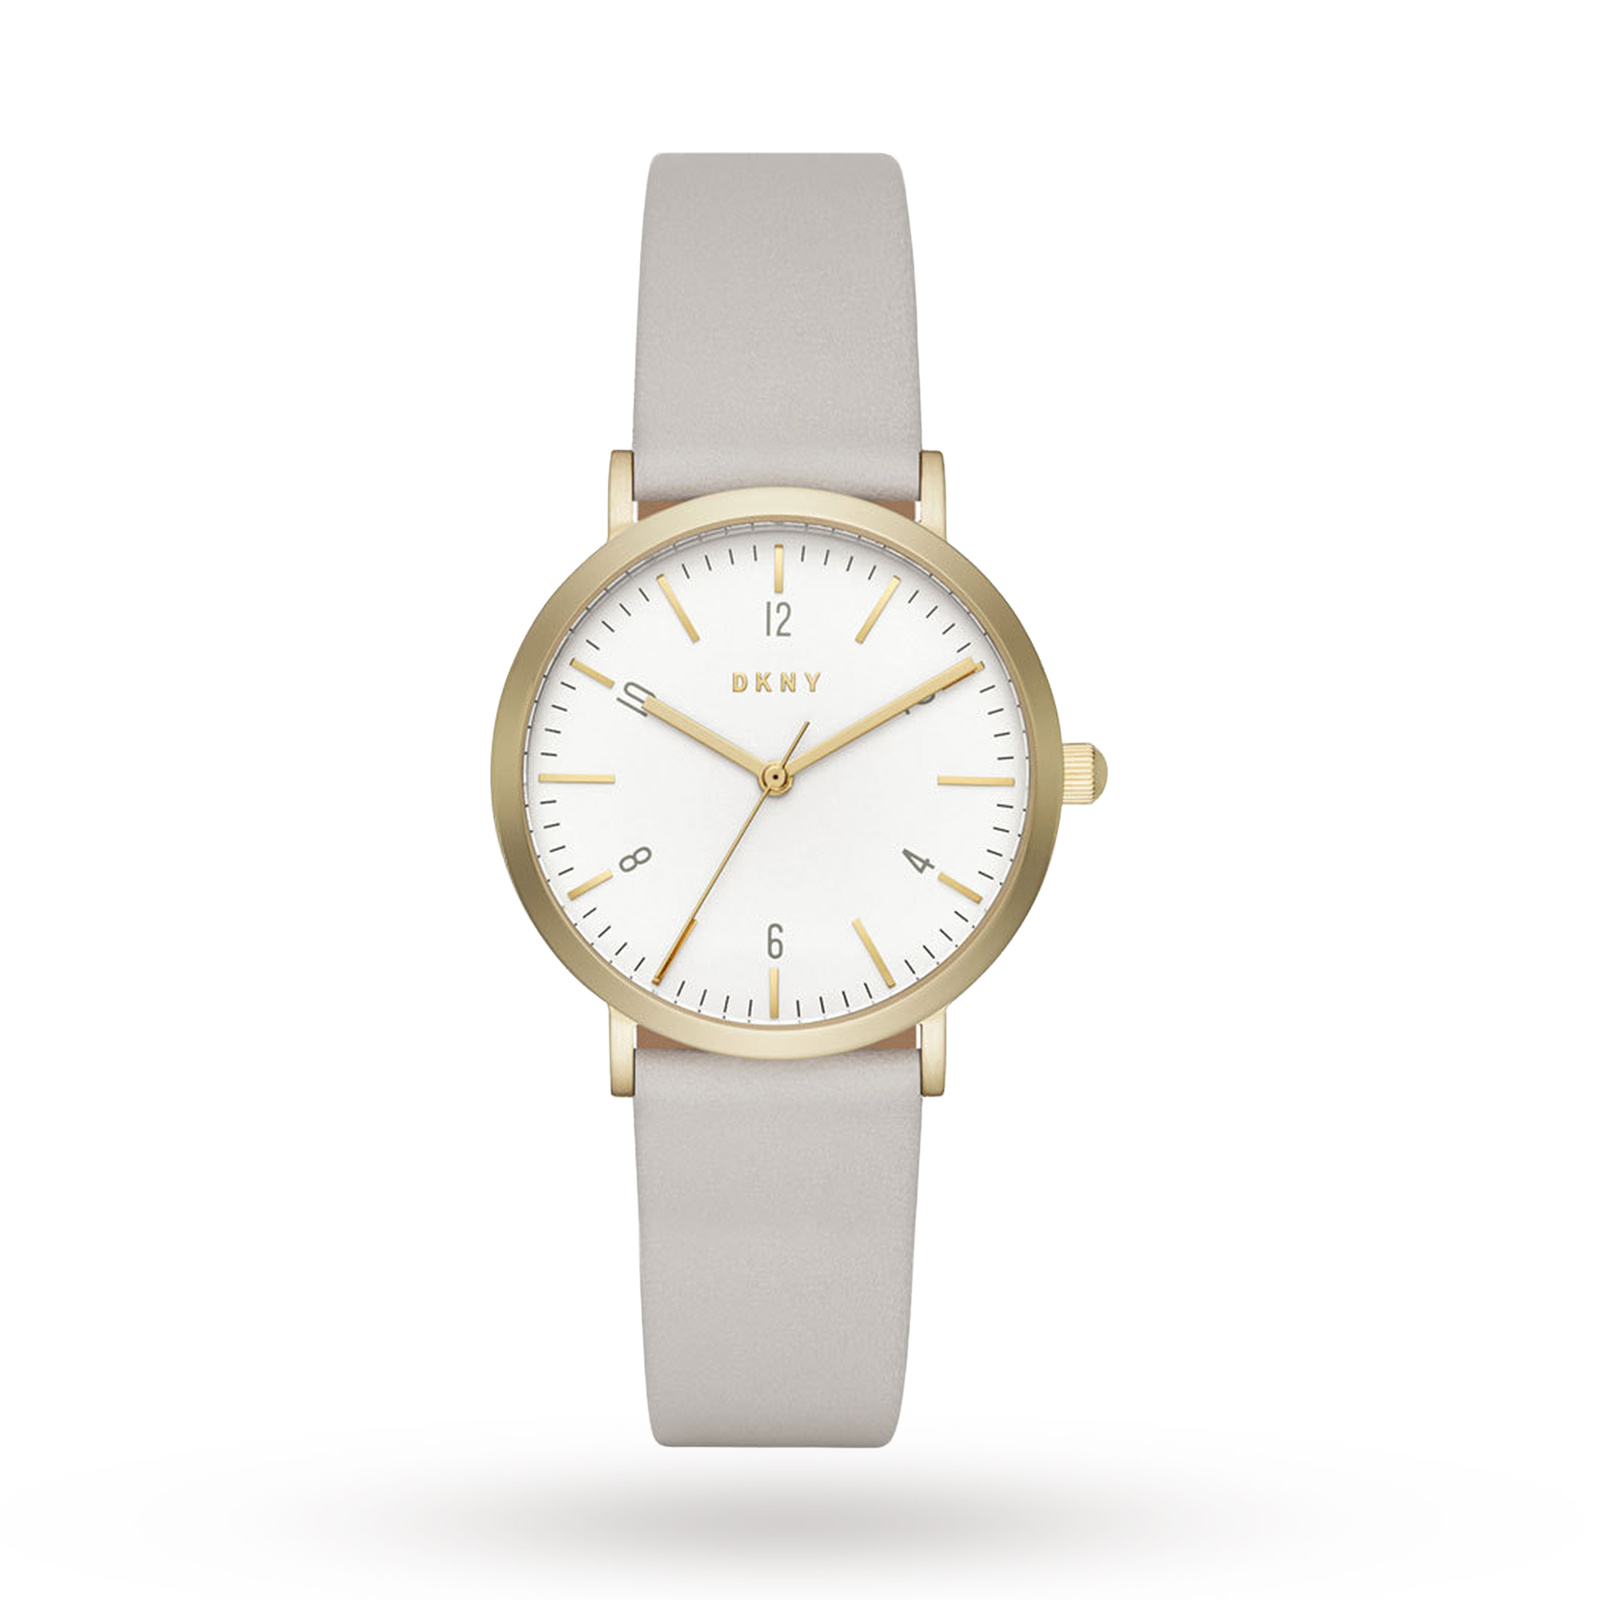 DKNY Minetta Gold-Tone and Plaster Leather Three-Hand Watch